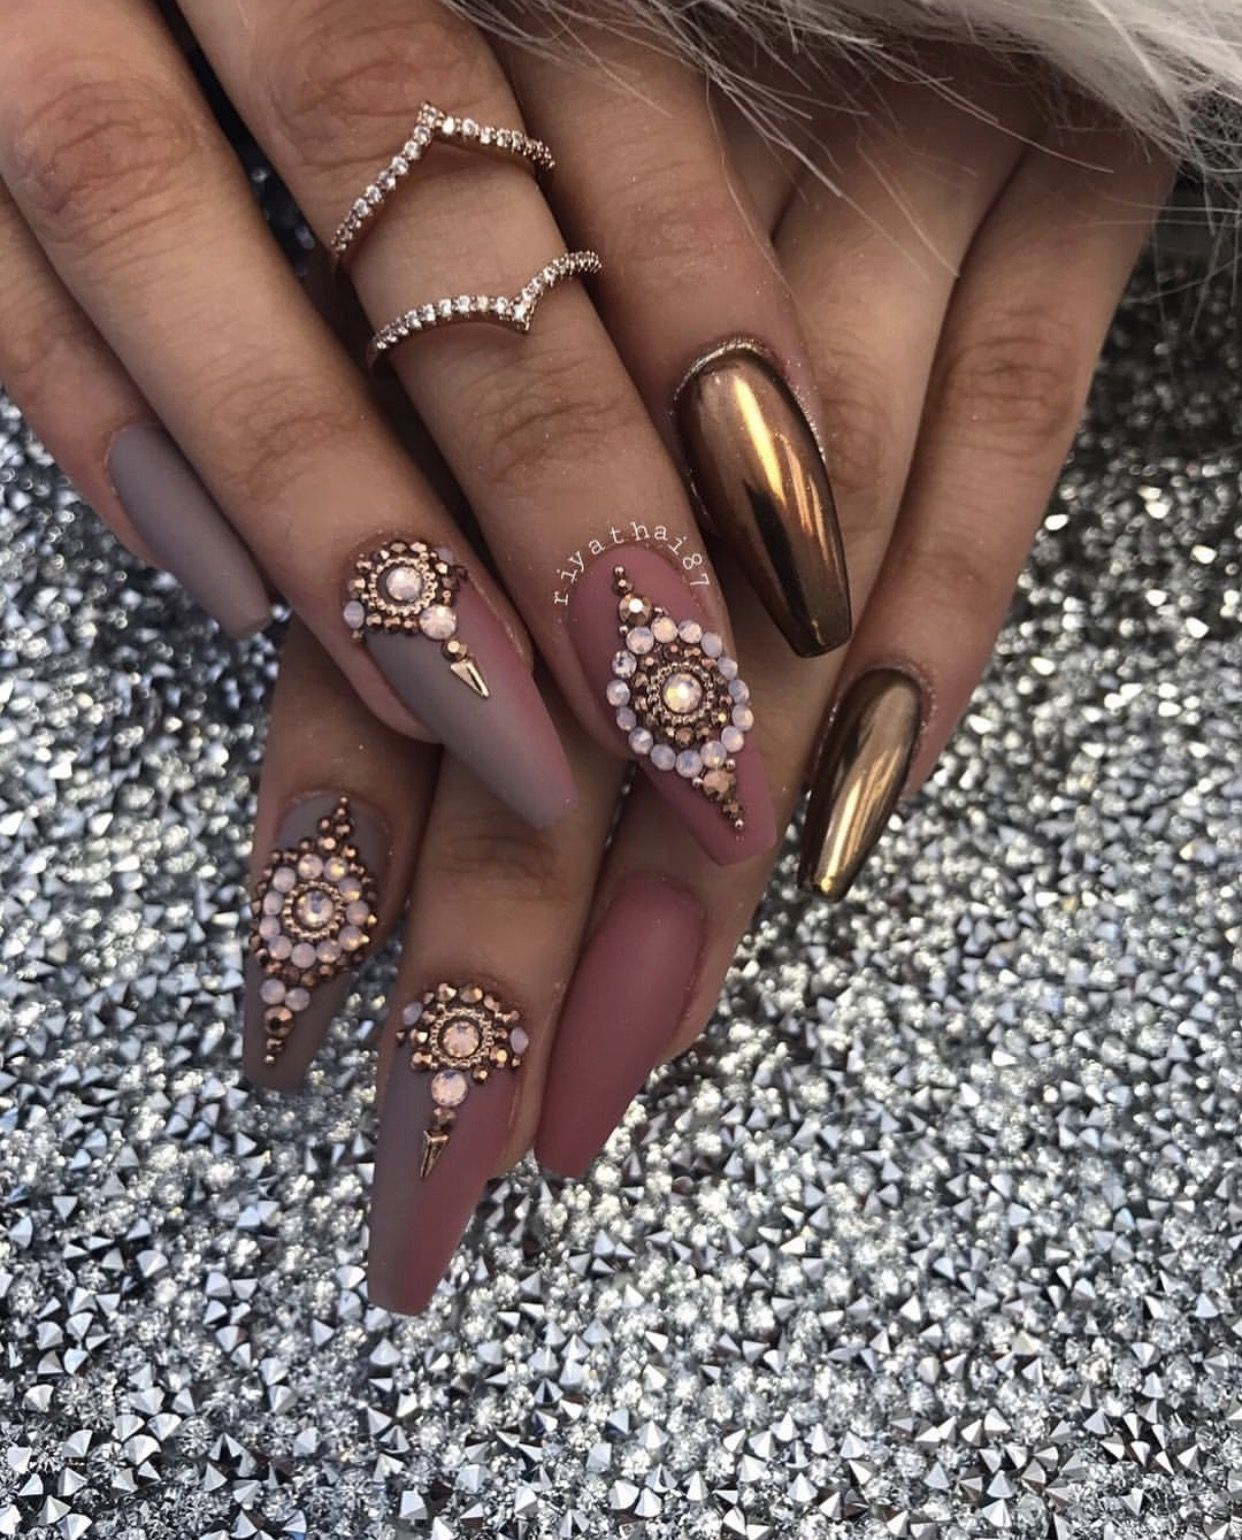 Newest Coffin Nails Art Designs To Try In 2019 Spring Coffin Nails Art Designs Long Coffin Nails Nail Designs Chrome Nails Bling Nails